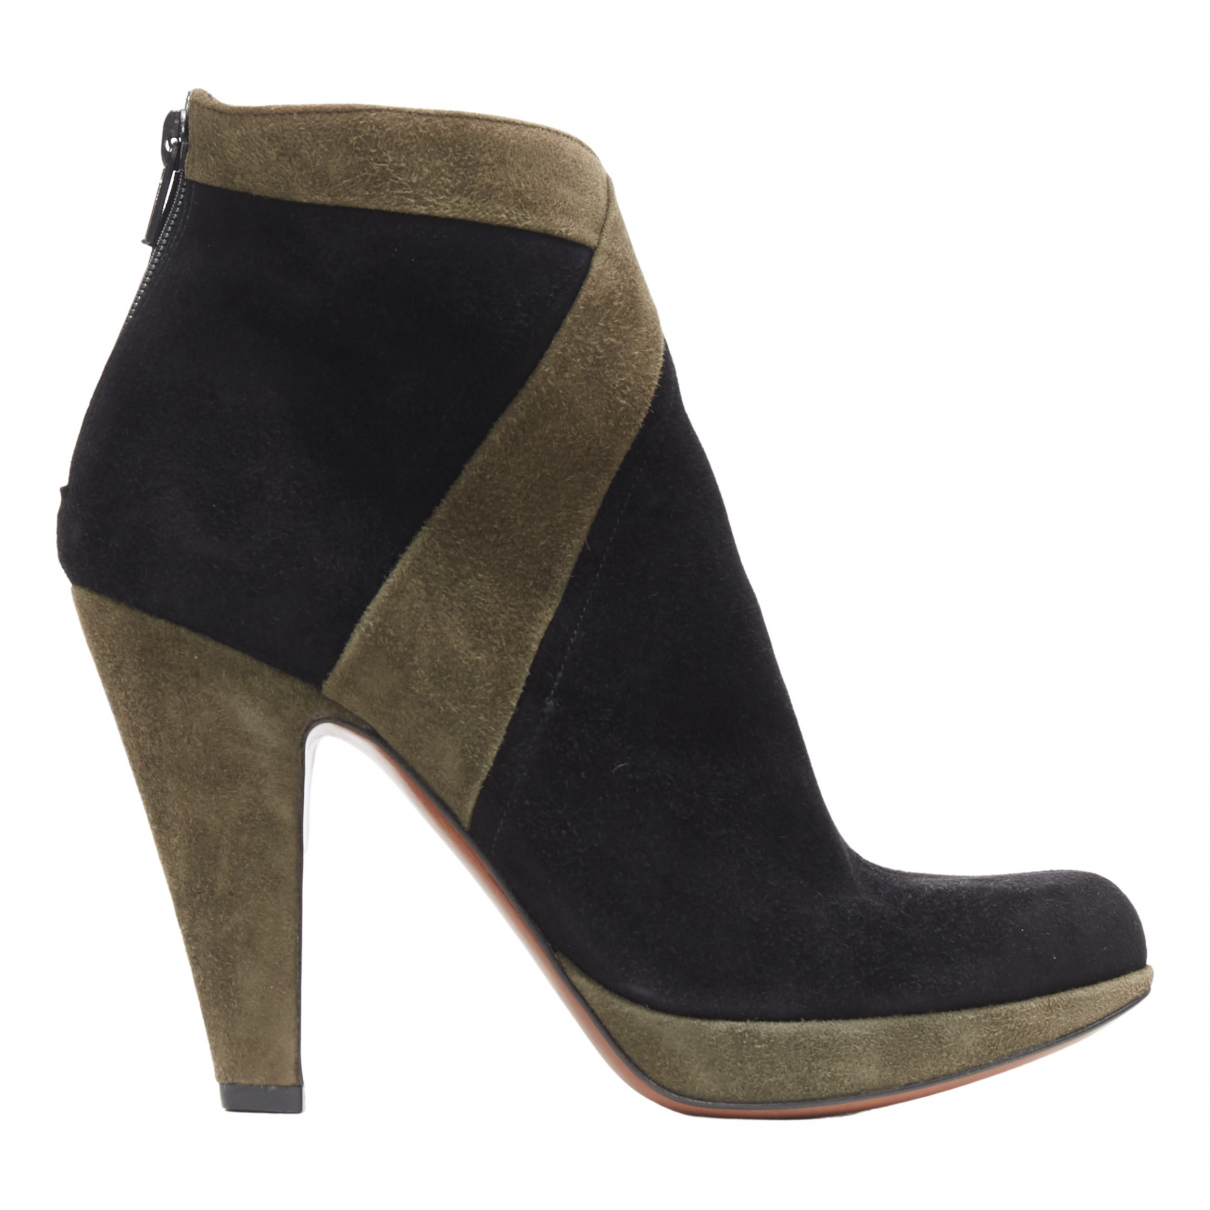 Alaïa \N Black Suede Ankle boots for Women 36 EU